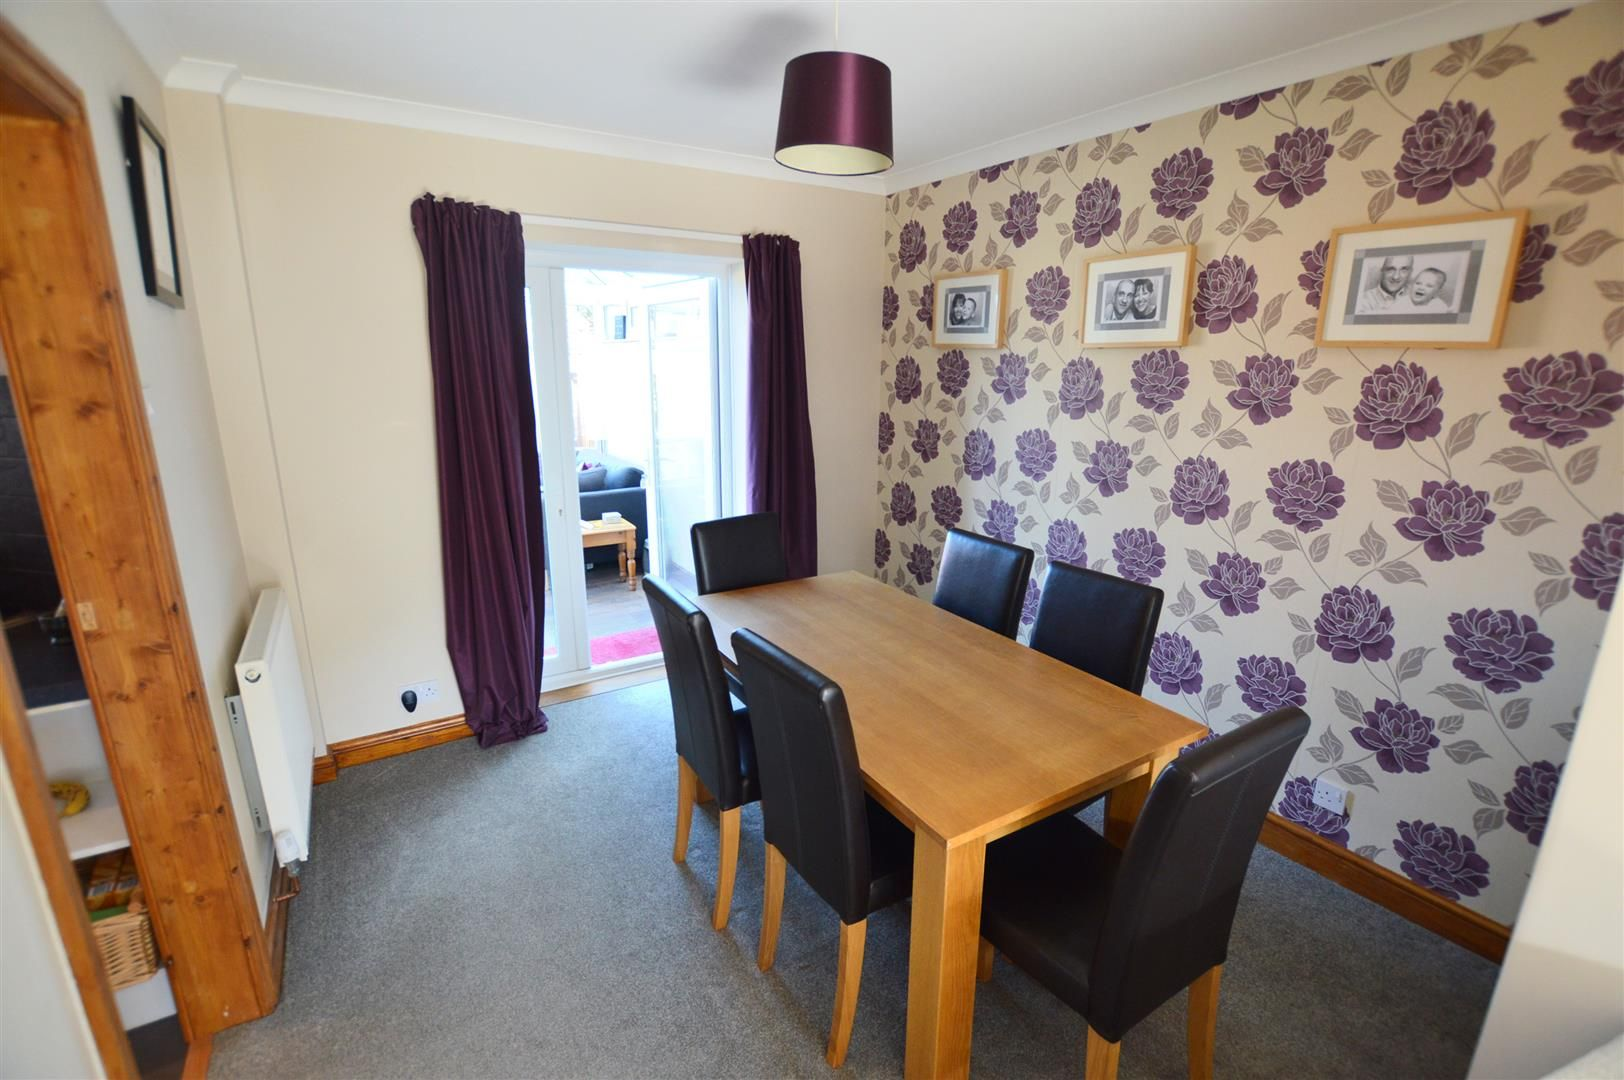 4 bed semi-detached for sale in Hereford 5